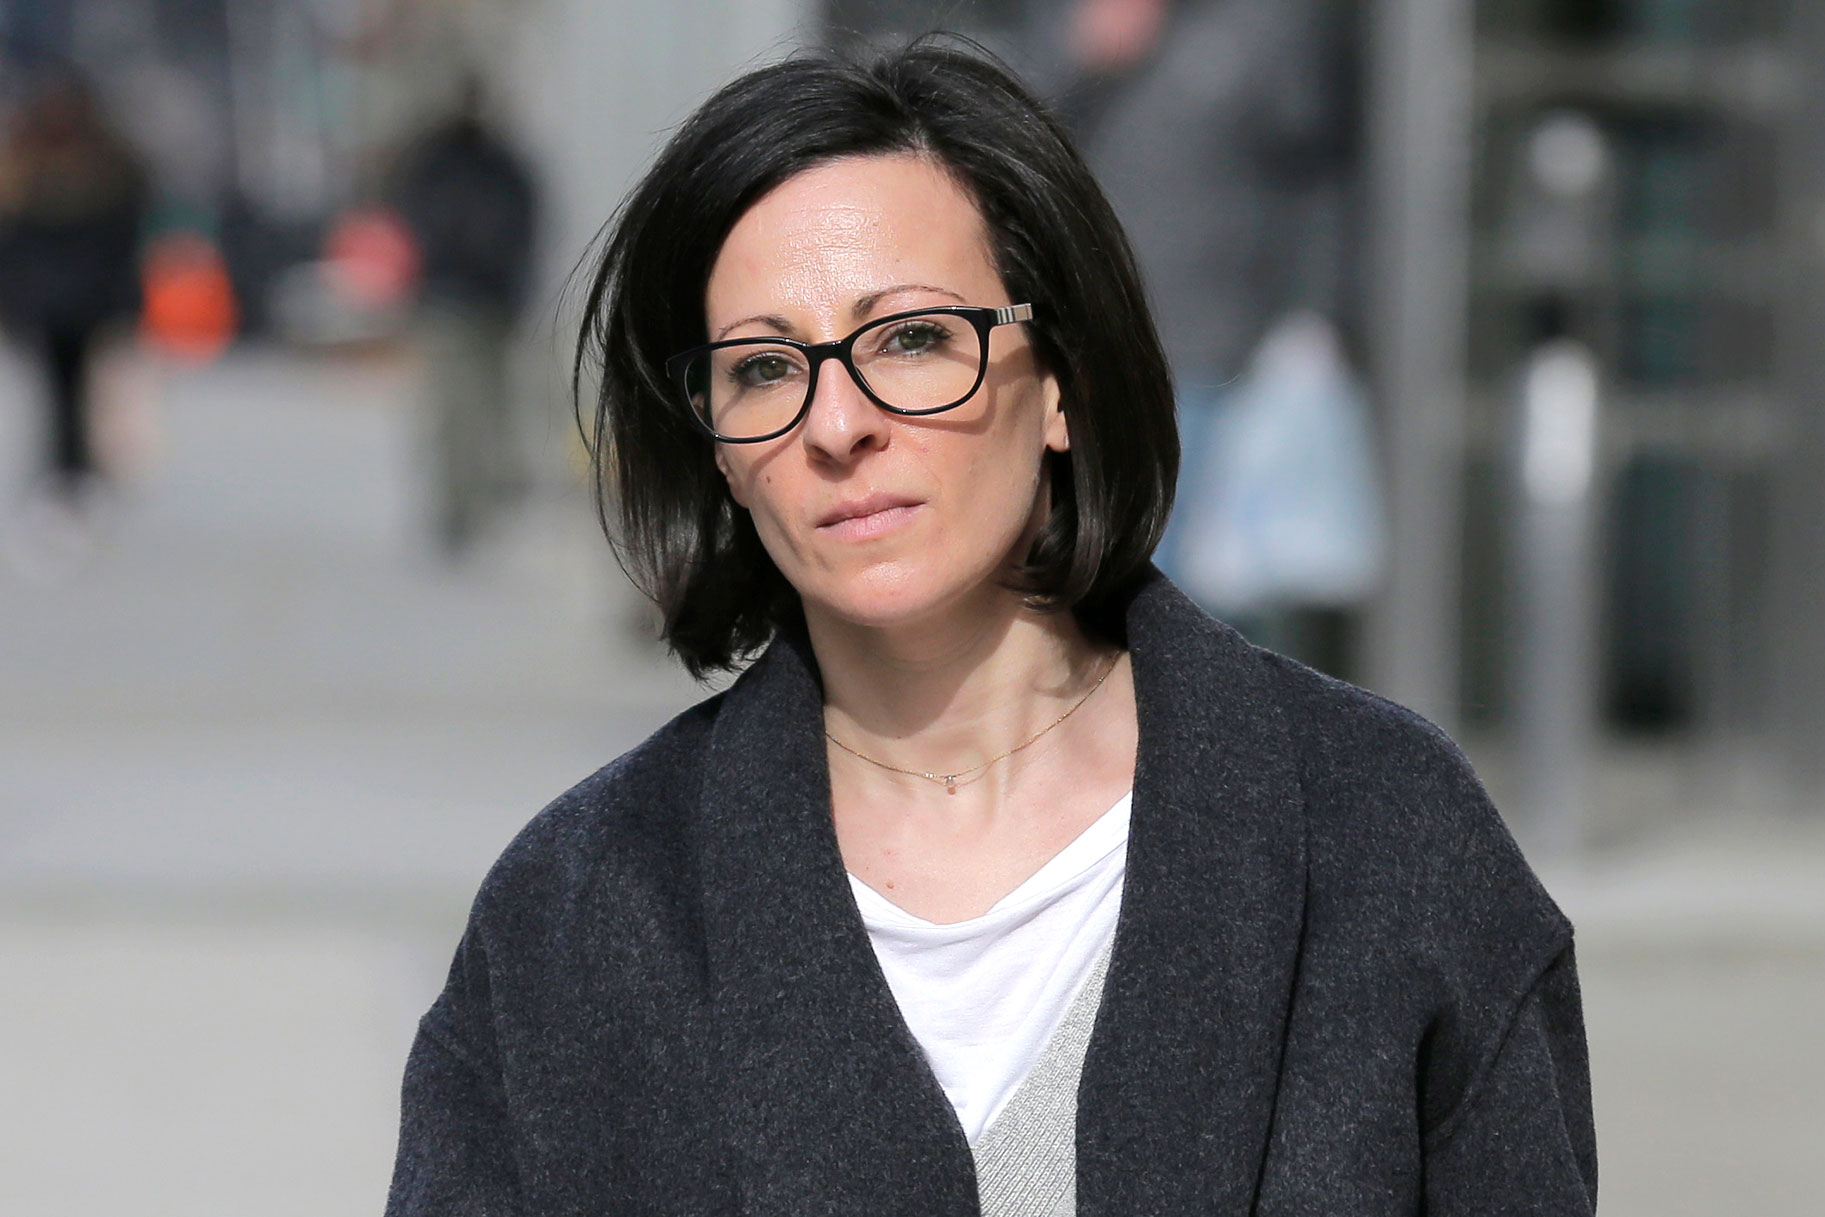 Deliberations To Begin In Trial Of Accused NXIVM Cult Leader